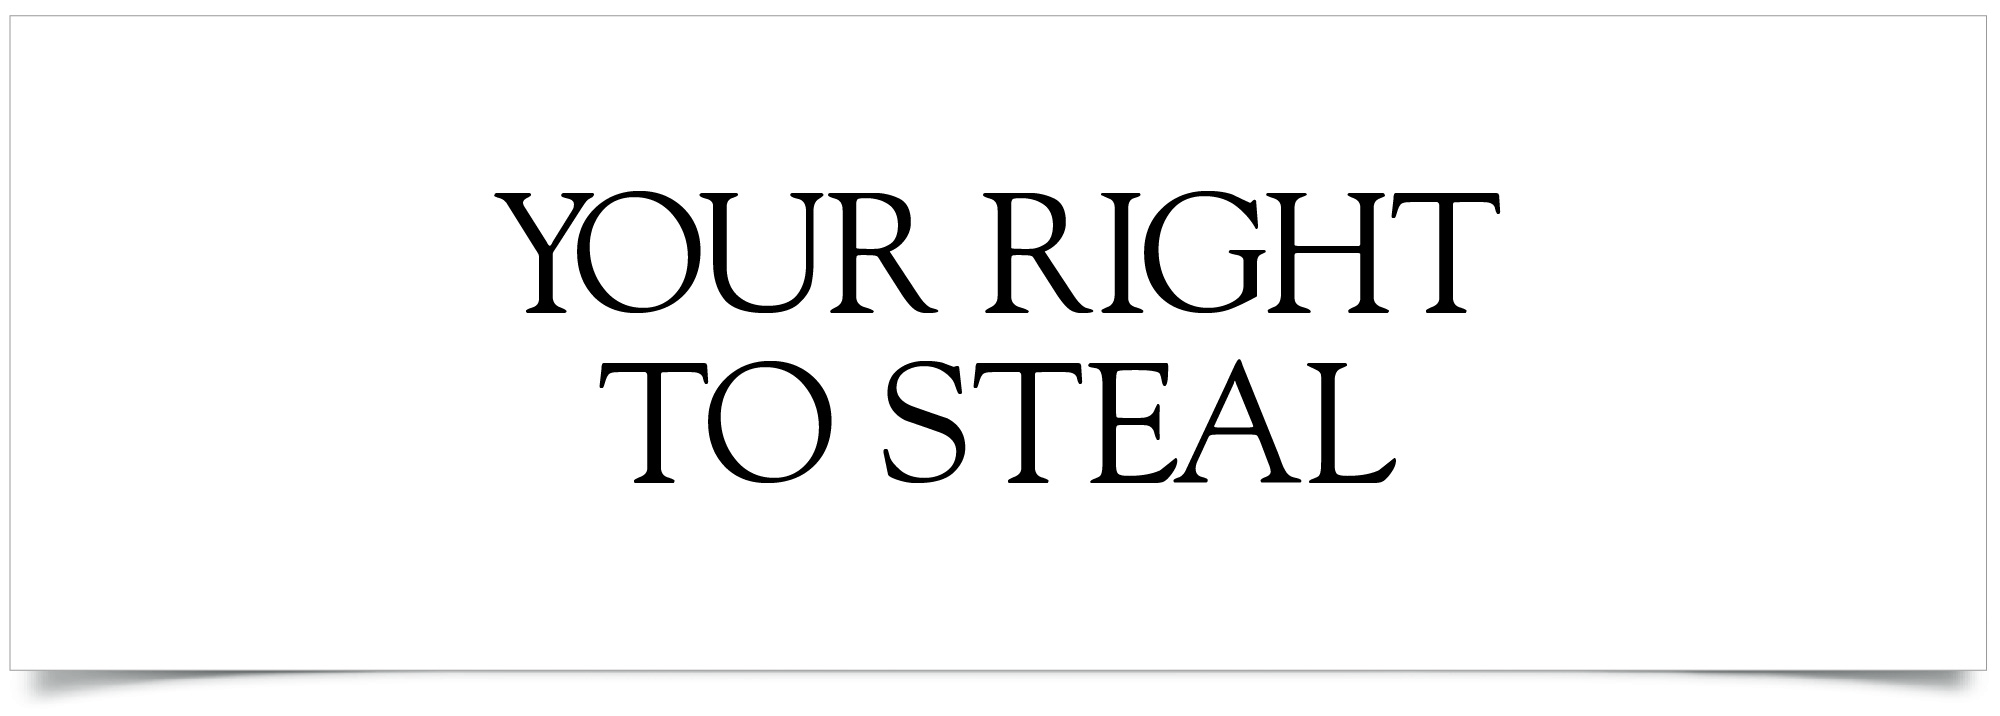 Your Right to Steal-34.jpg